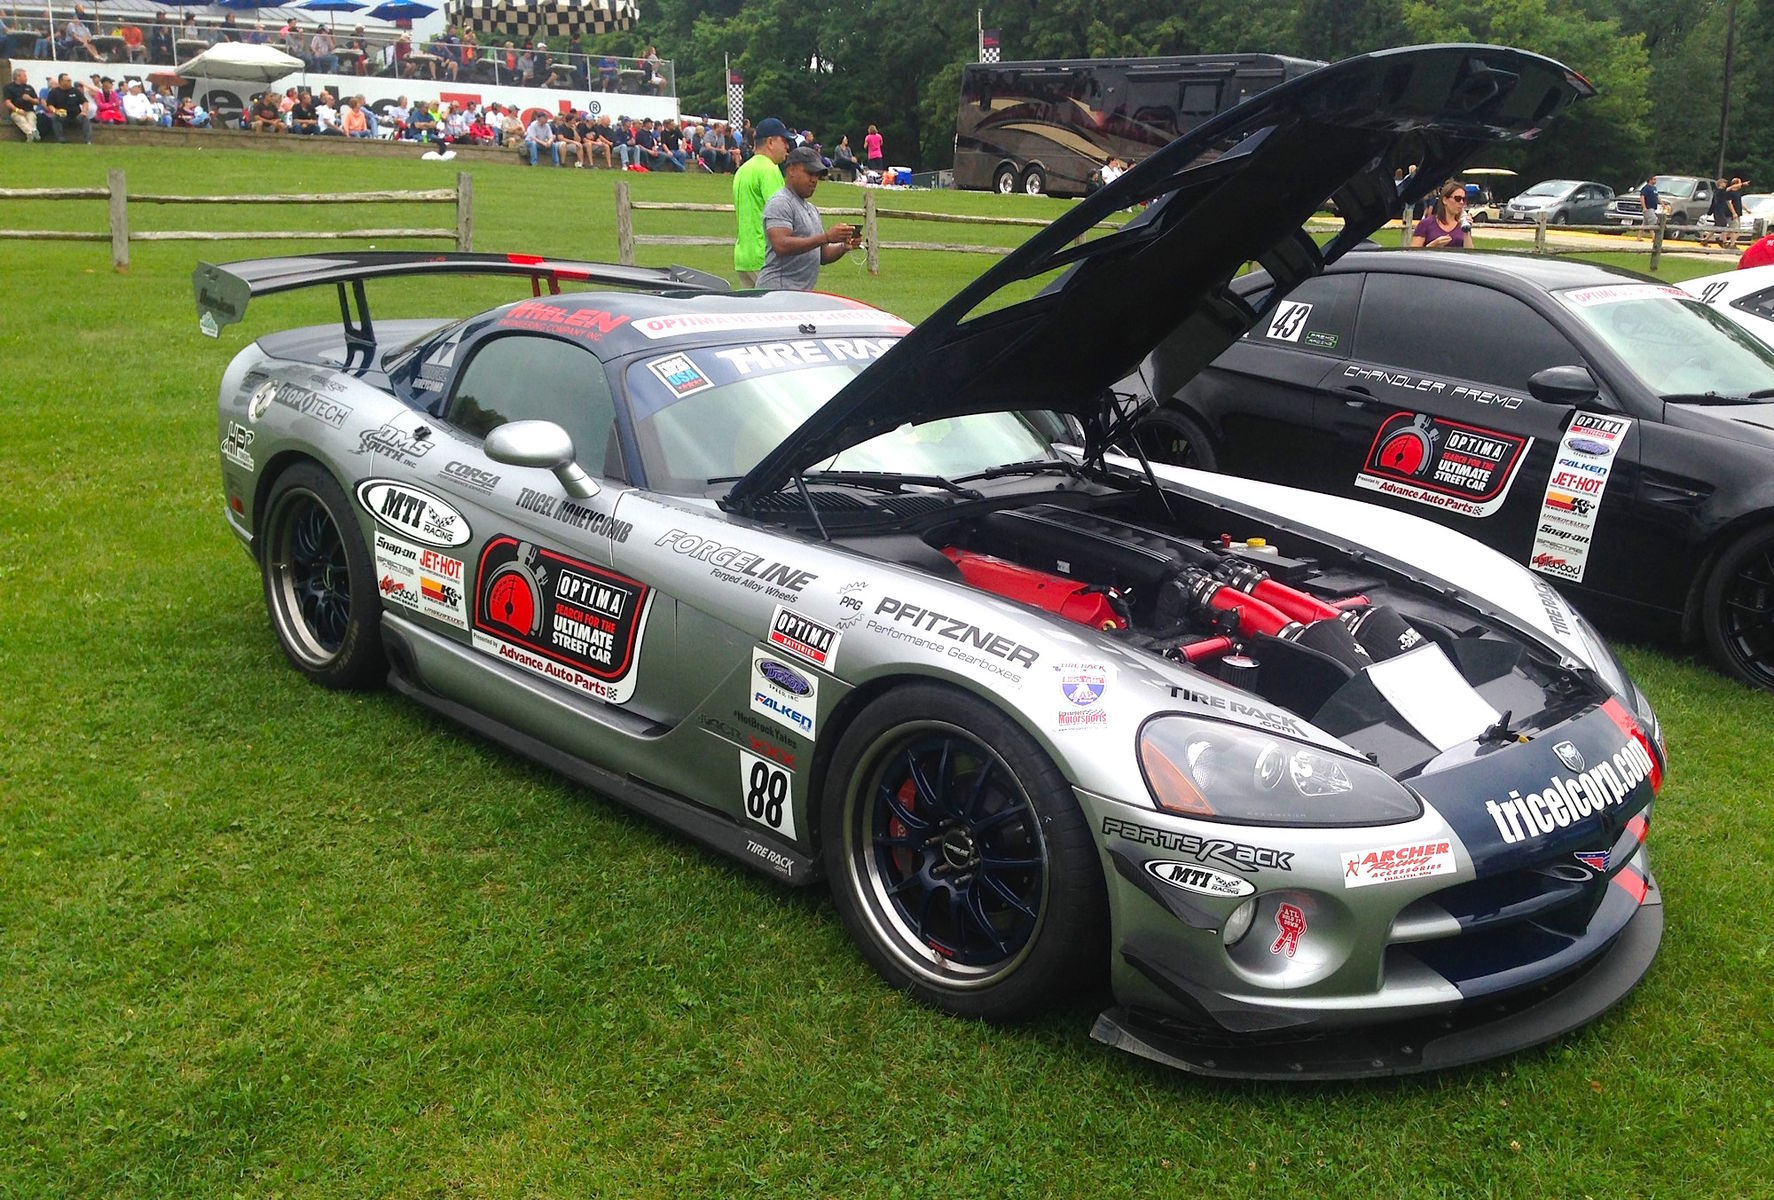 2008 Dodge Viper | Viper on Forgeline GA3R-6 Wheels